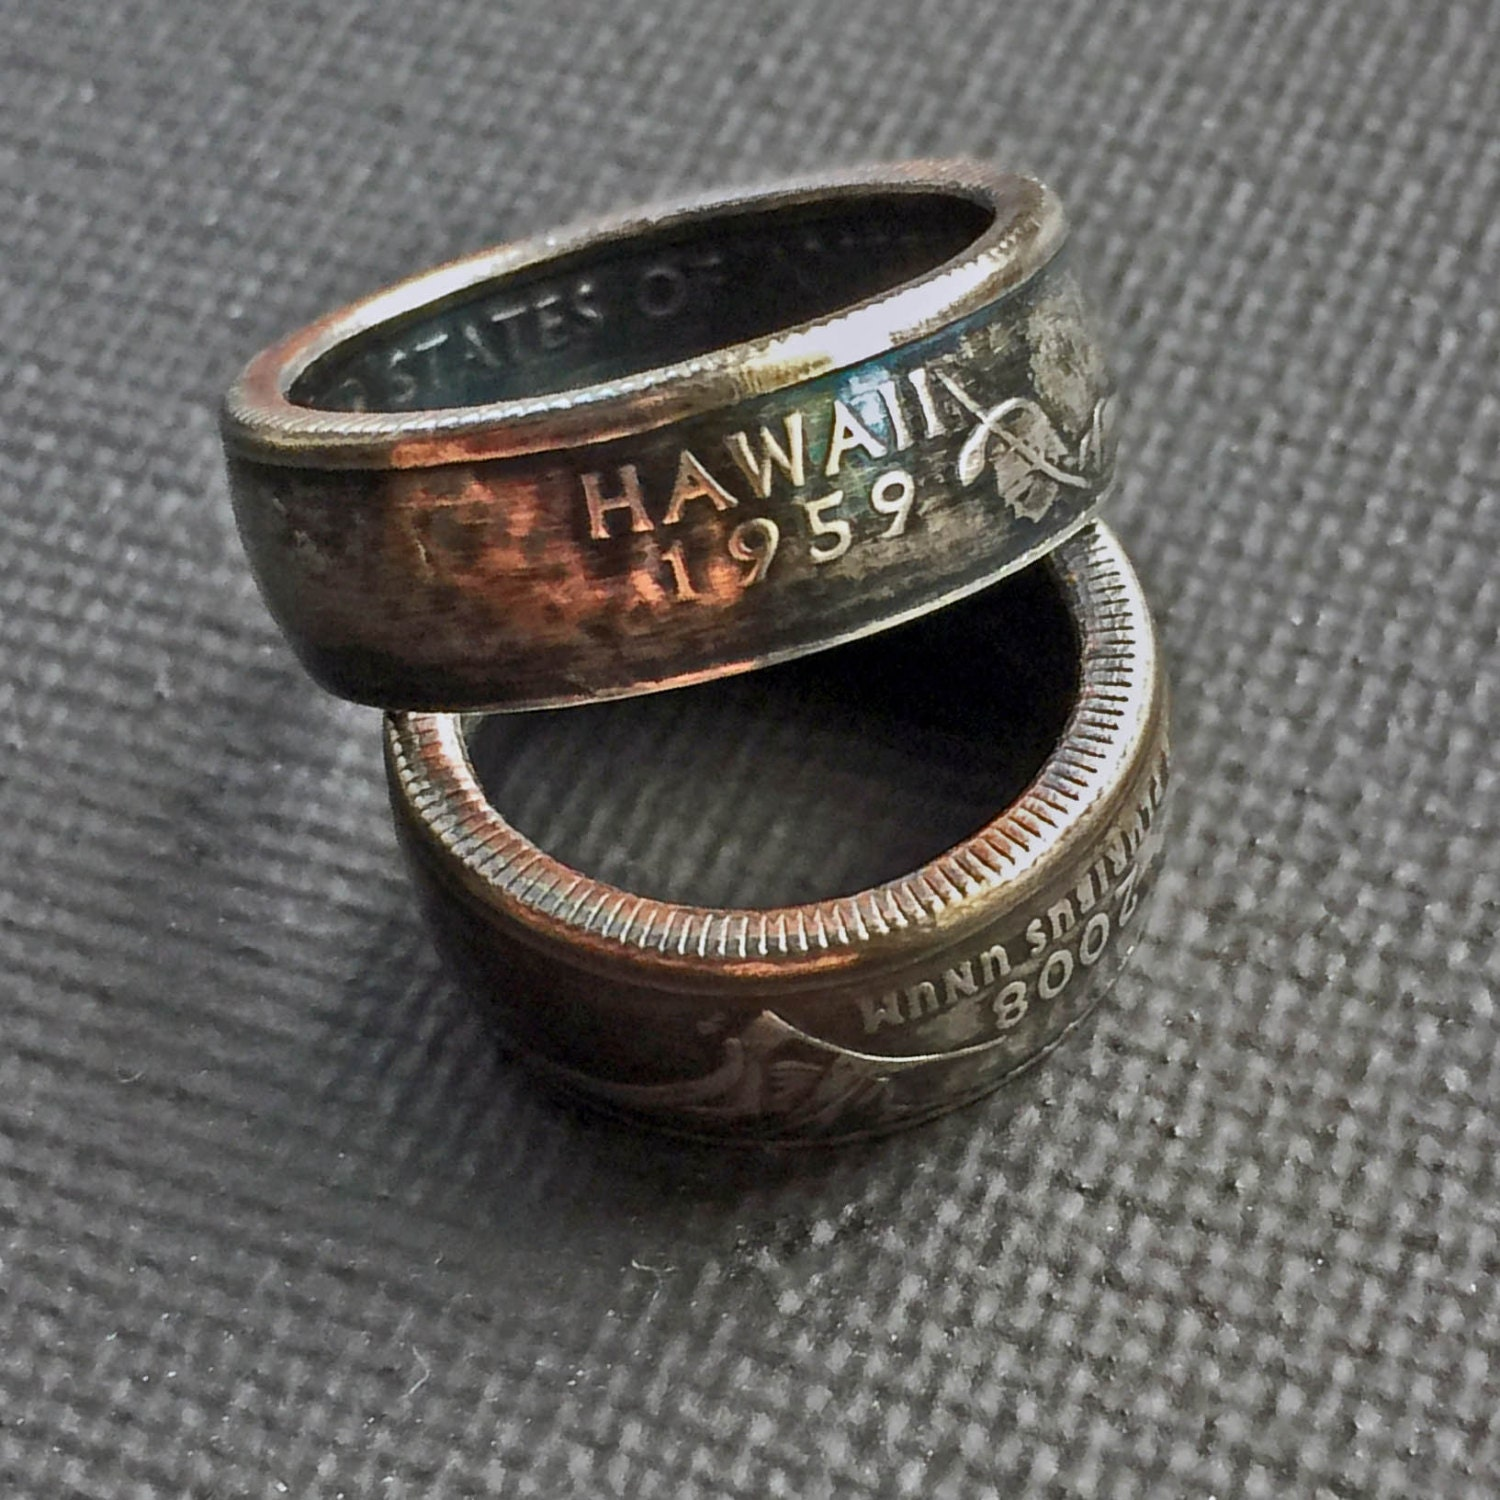 coin ringhawaiian jewelryhawaiian ringquarter ringjewelryringswedding bandhawaiiupcycledmens ringwedding ringsrepurpose - Hawaiian Wedding Rings